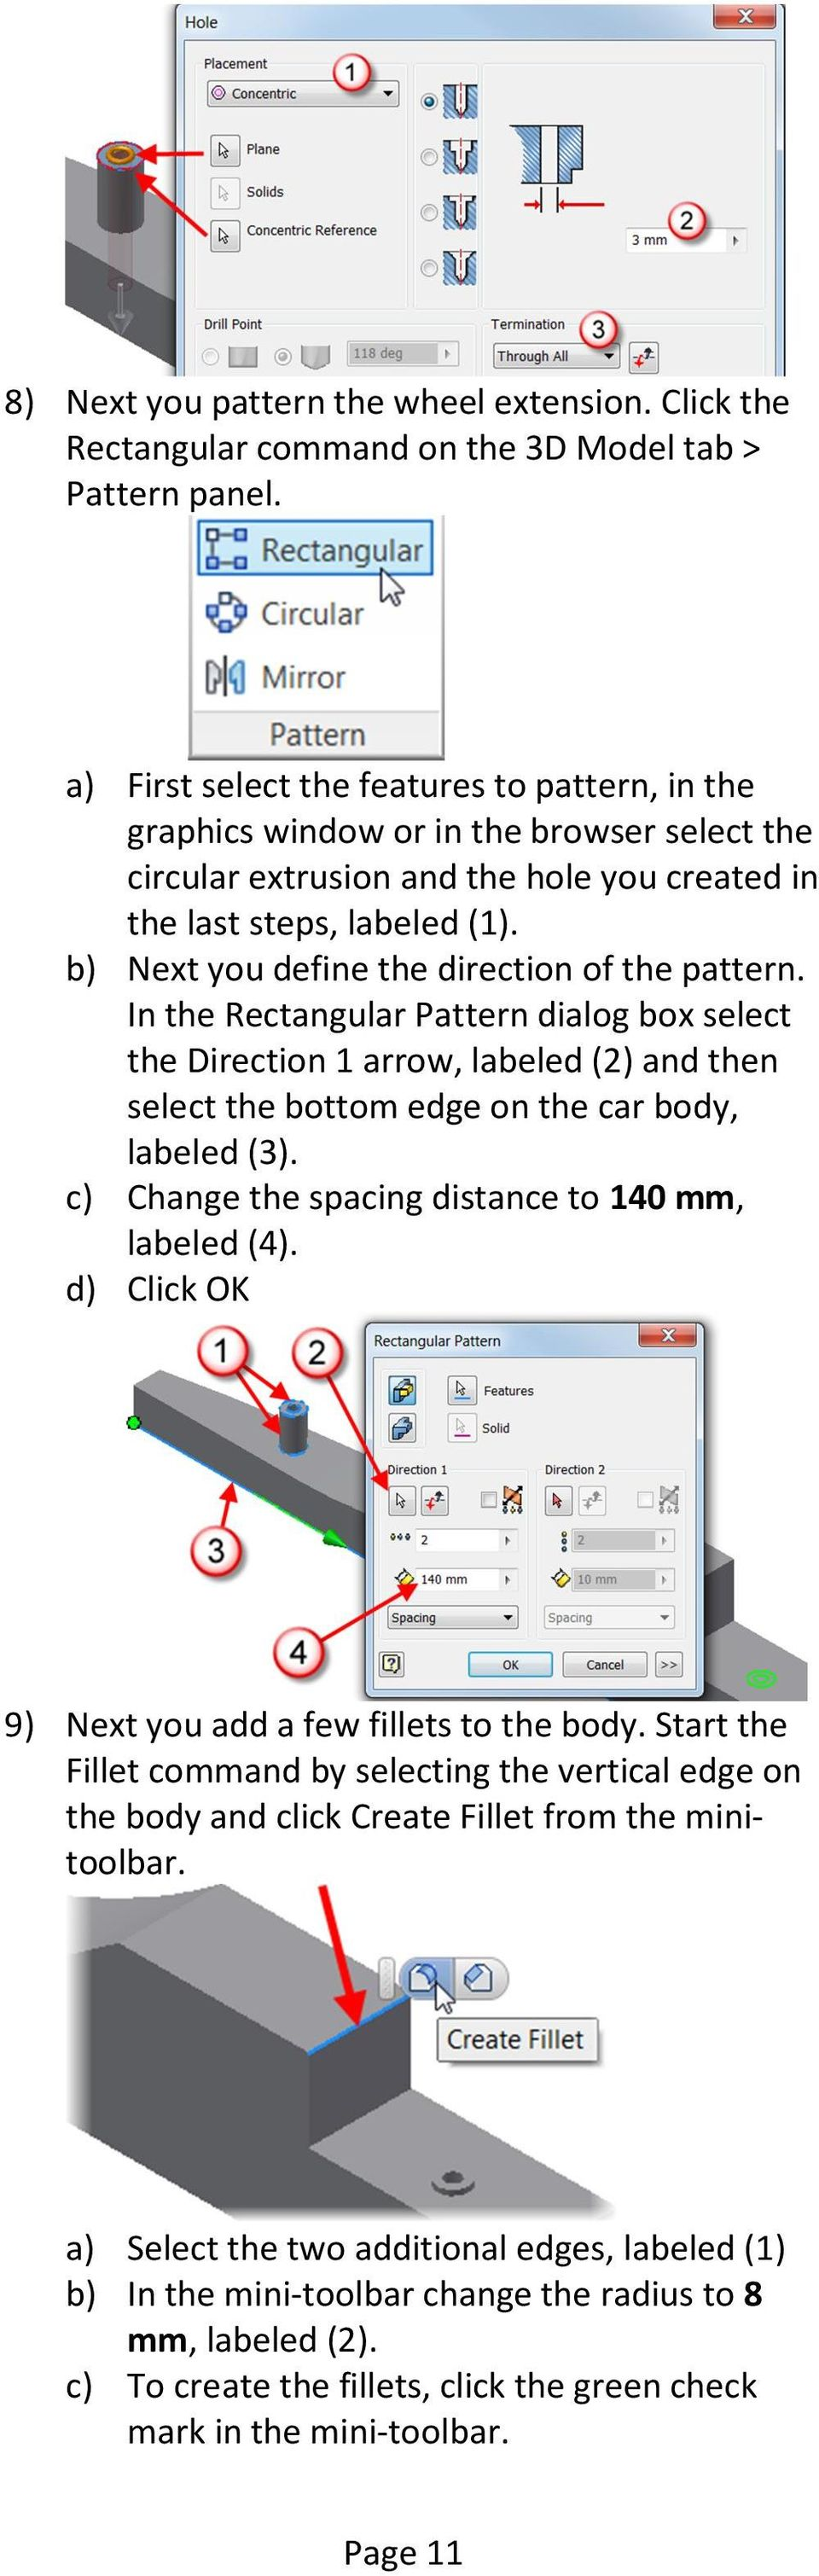 b) Next you define the direction of the pattern. In the Rectangular Pattern dialog box select the Direction 1 arrow, labeled (2) and then select the bottom edge on the car body, labeled (3).